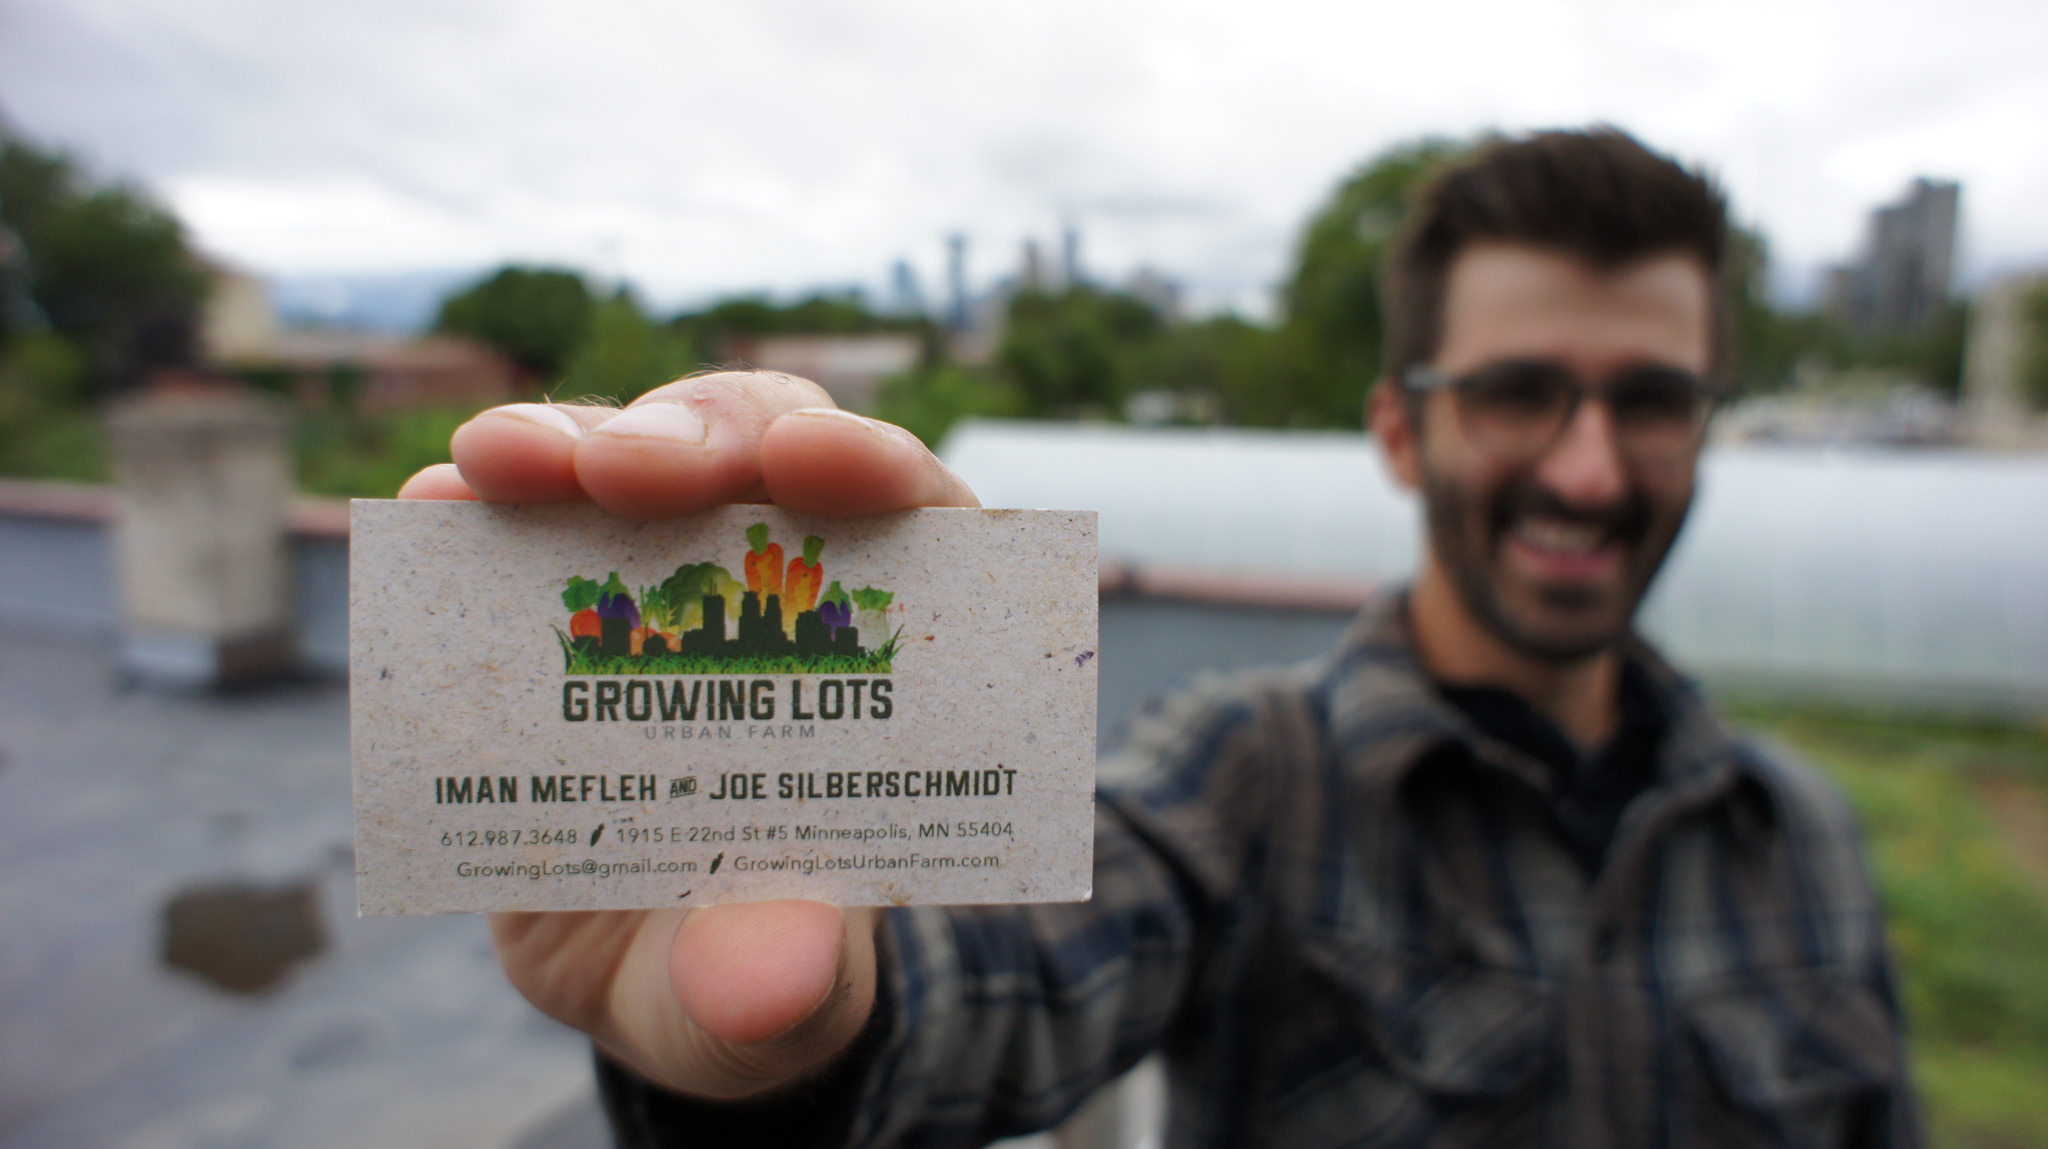 Growing-Lots-Card in hand